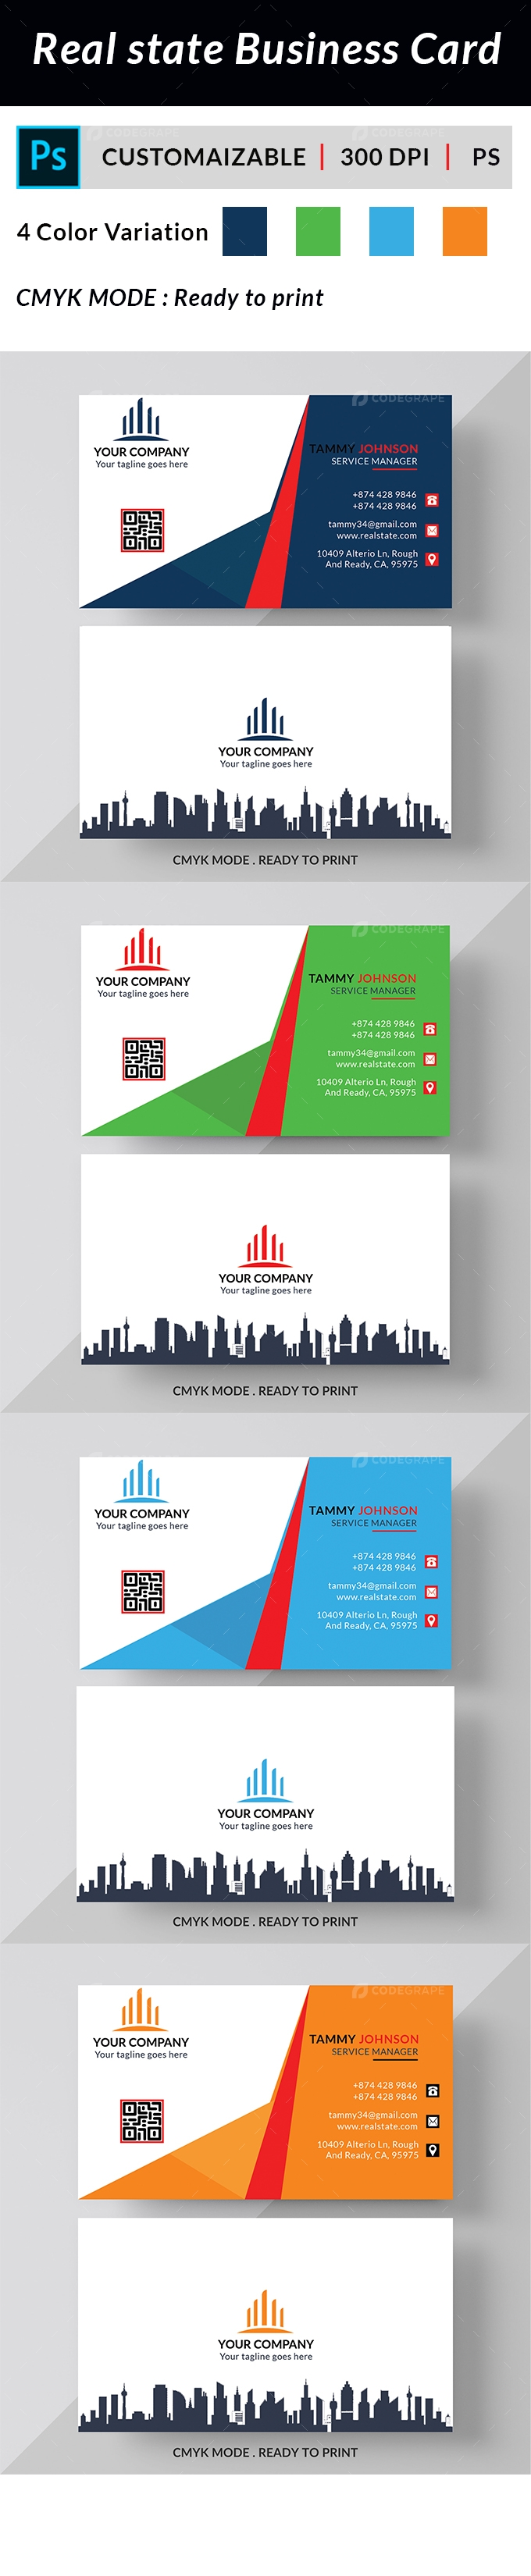 Real State Business Card